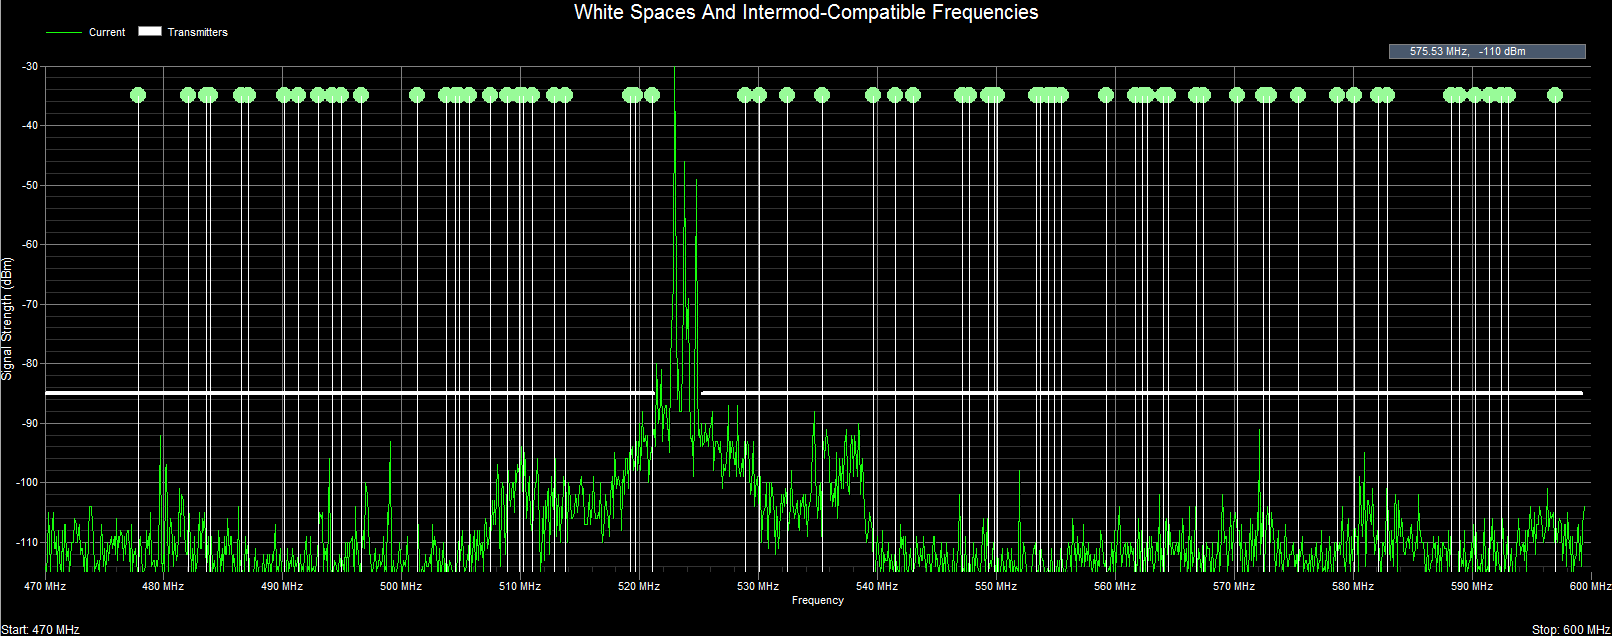 Clear Waves -- Whitespaces And Intermod-Compatible Frequencies